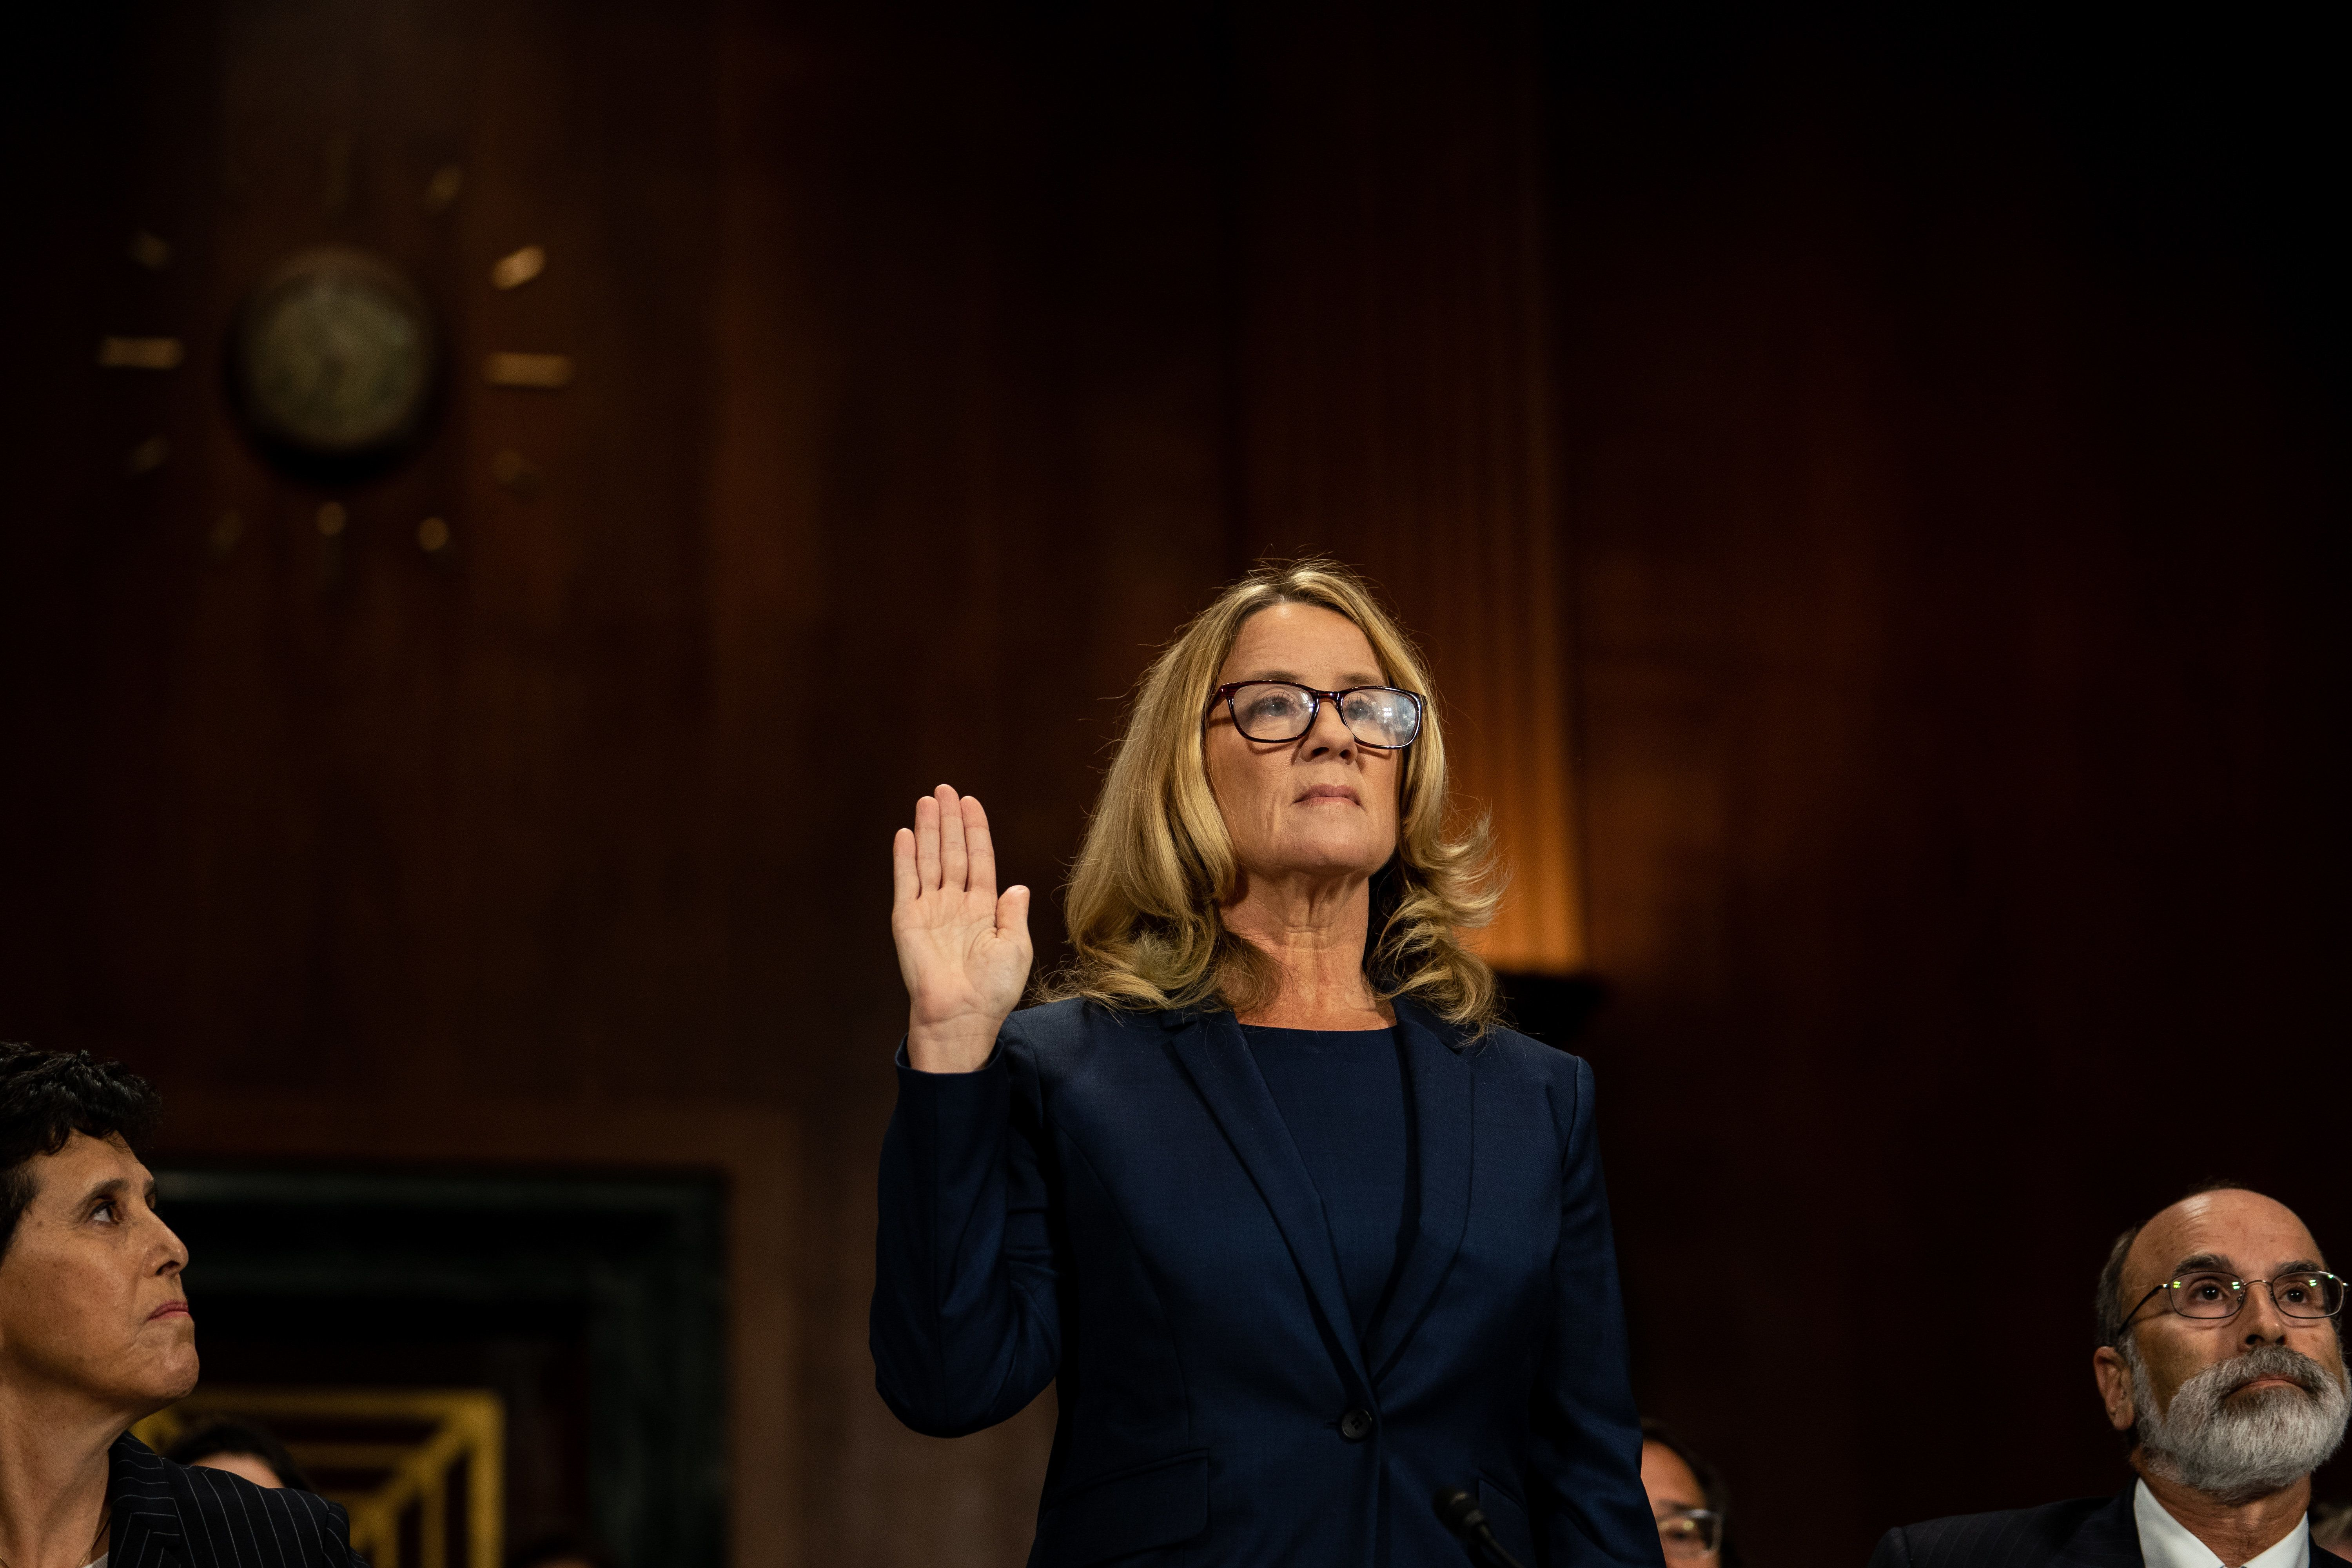 WASHINGTON, DC - SEPTEMBER 27:  Christine Blasey Ford is sworn in prior to giving testimony before the U.S. Senate Judiciary Committee at the Dirksen Senate Office Building on Capitol Hill September 27, 2018 in Washington, DC. Blasey Ford, a professor at Palo Alto University and a research psychologist at the Stanford University School of Medicine, has accused Supreme Court nominee Brett Kavanaugh of sexually assaulting her during a party in 1982 when they were high school students in suburban Maryland.